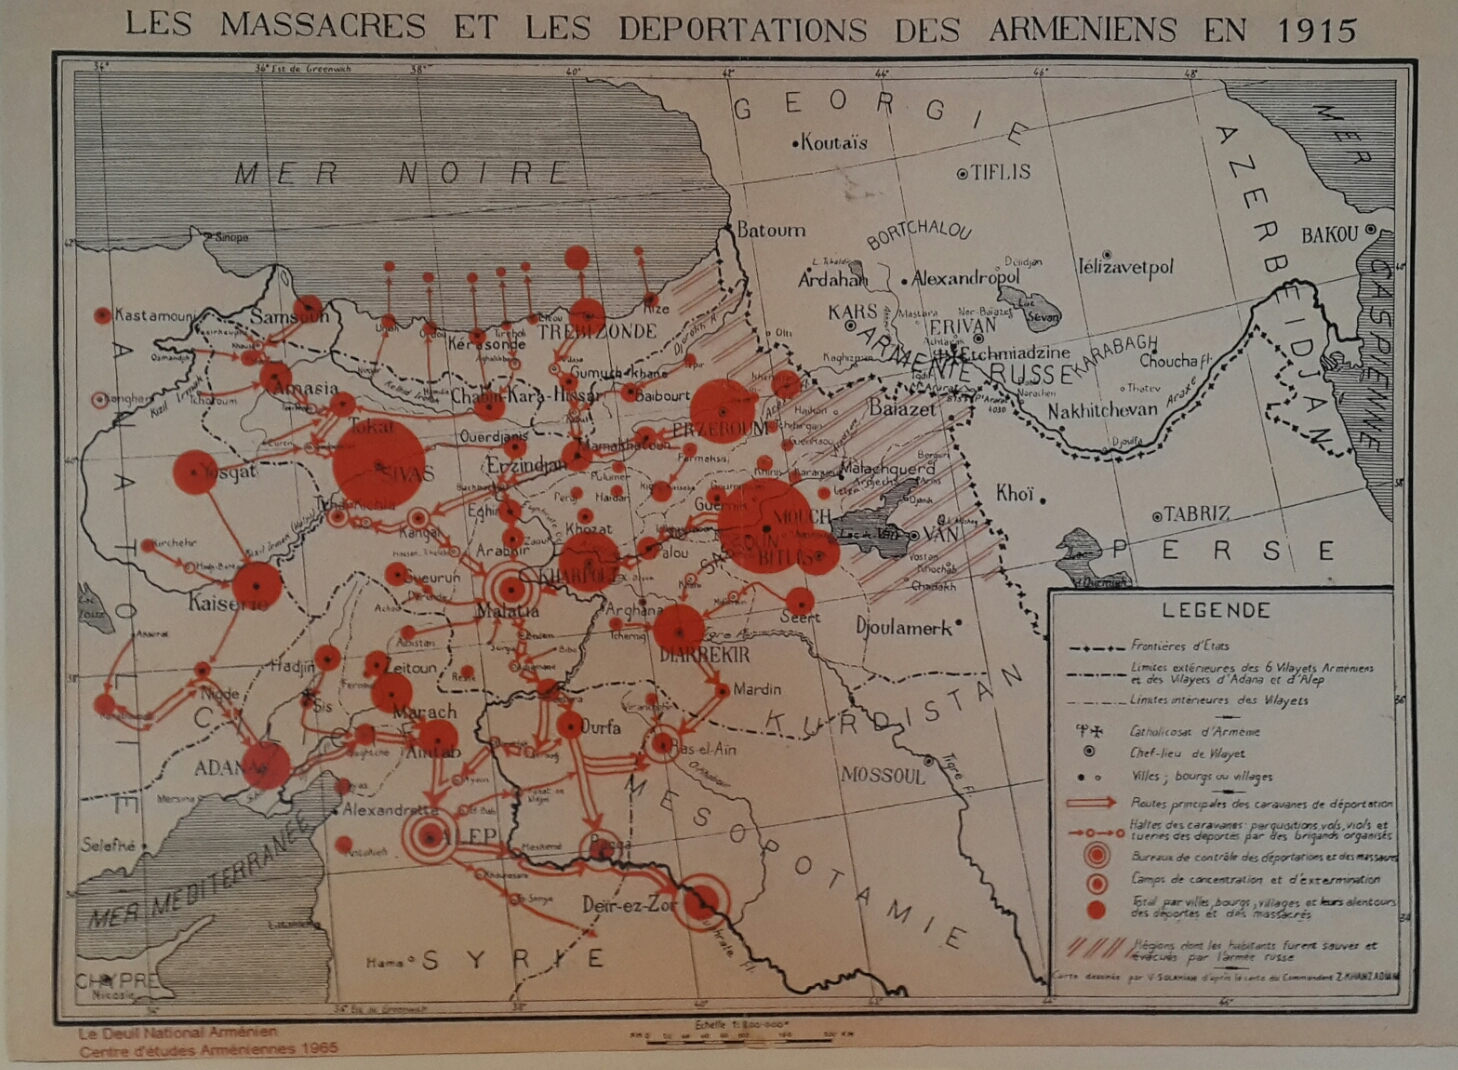 Massacres and Deportations of the Armenians 1915.  Courtesy of Centre d'études Armeniens 1965; Collection IUT Blois, France.